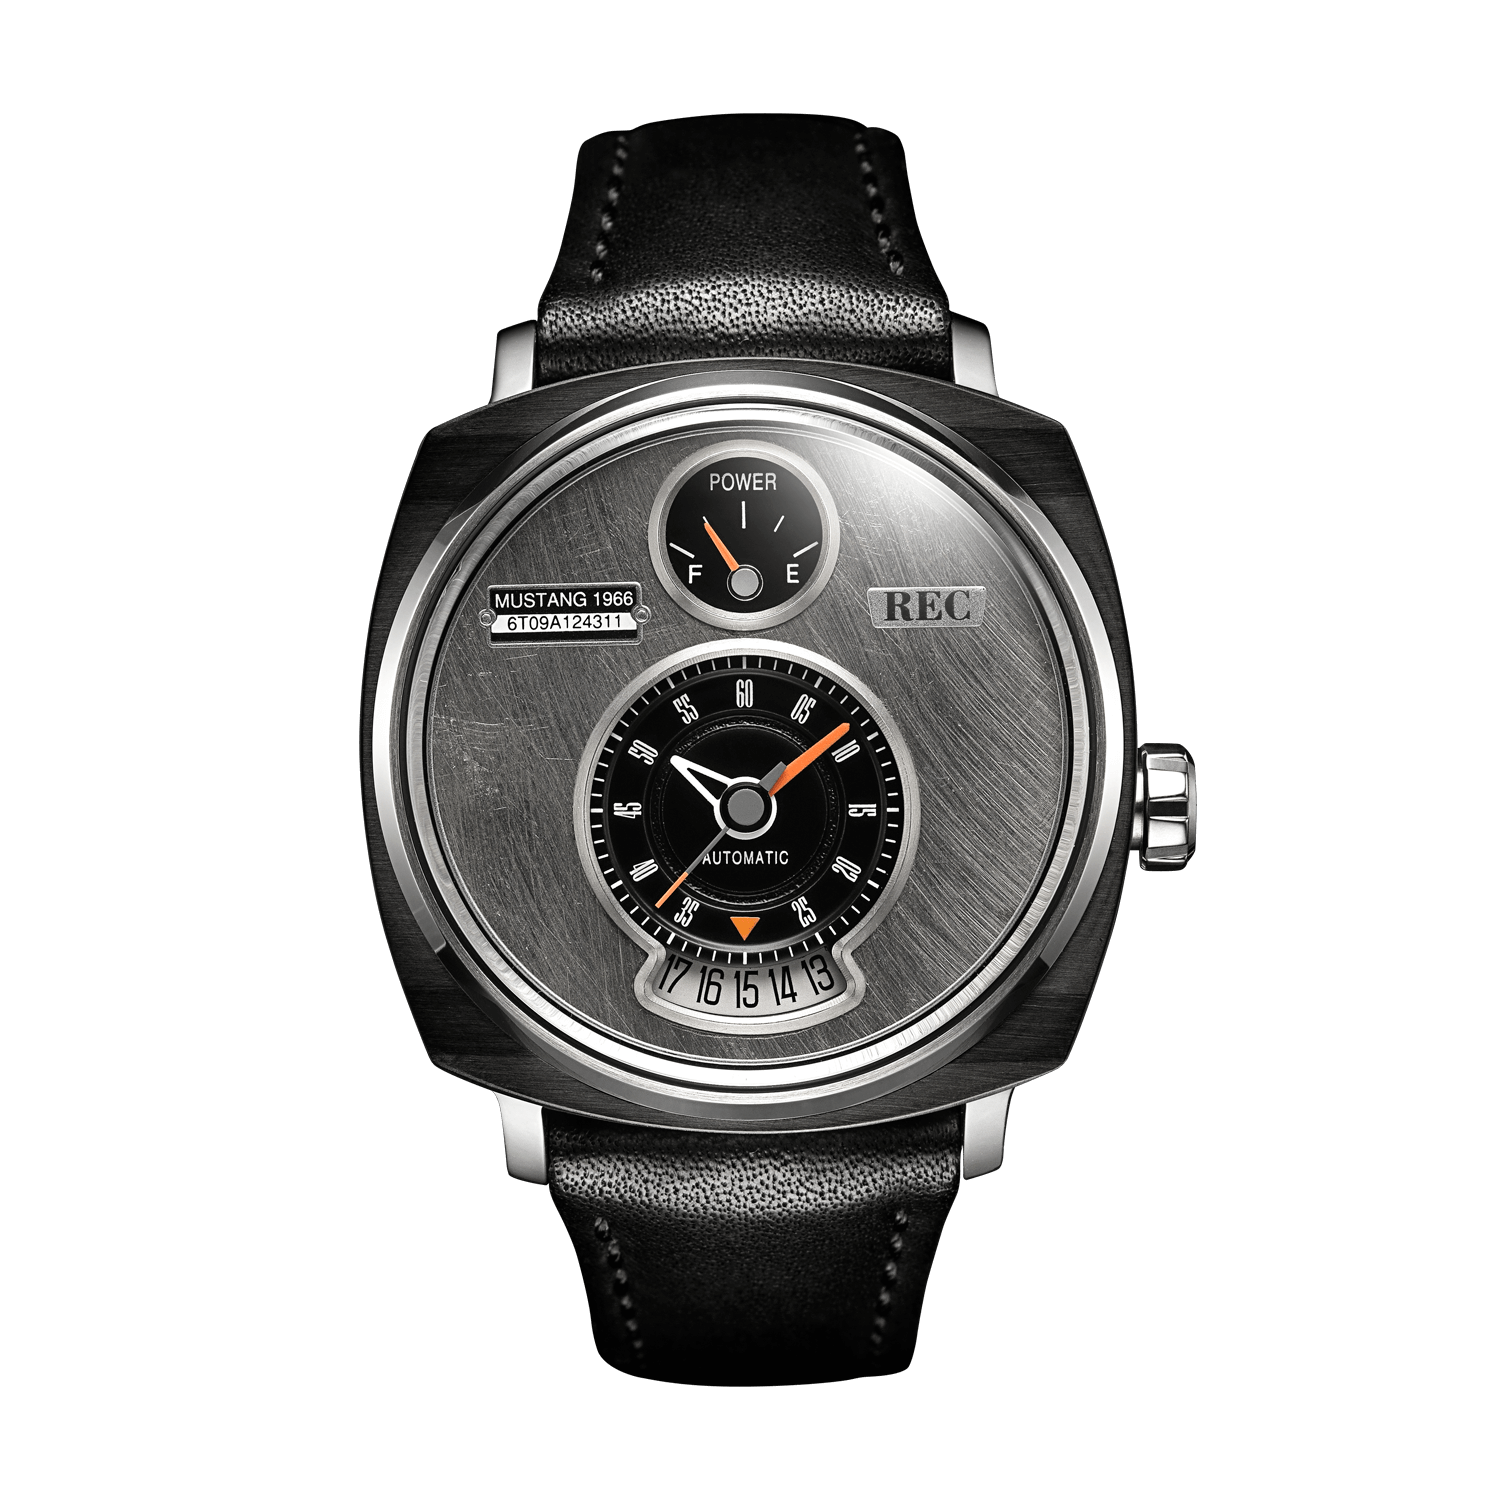 buy luminor tourbillon officine watches montredo gmt panerai en reserve power